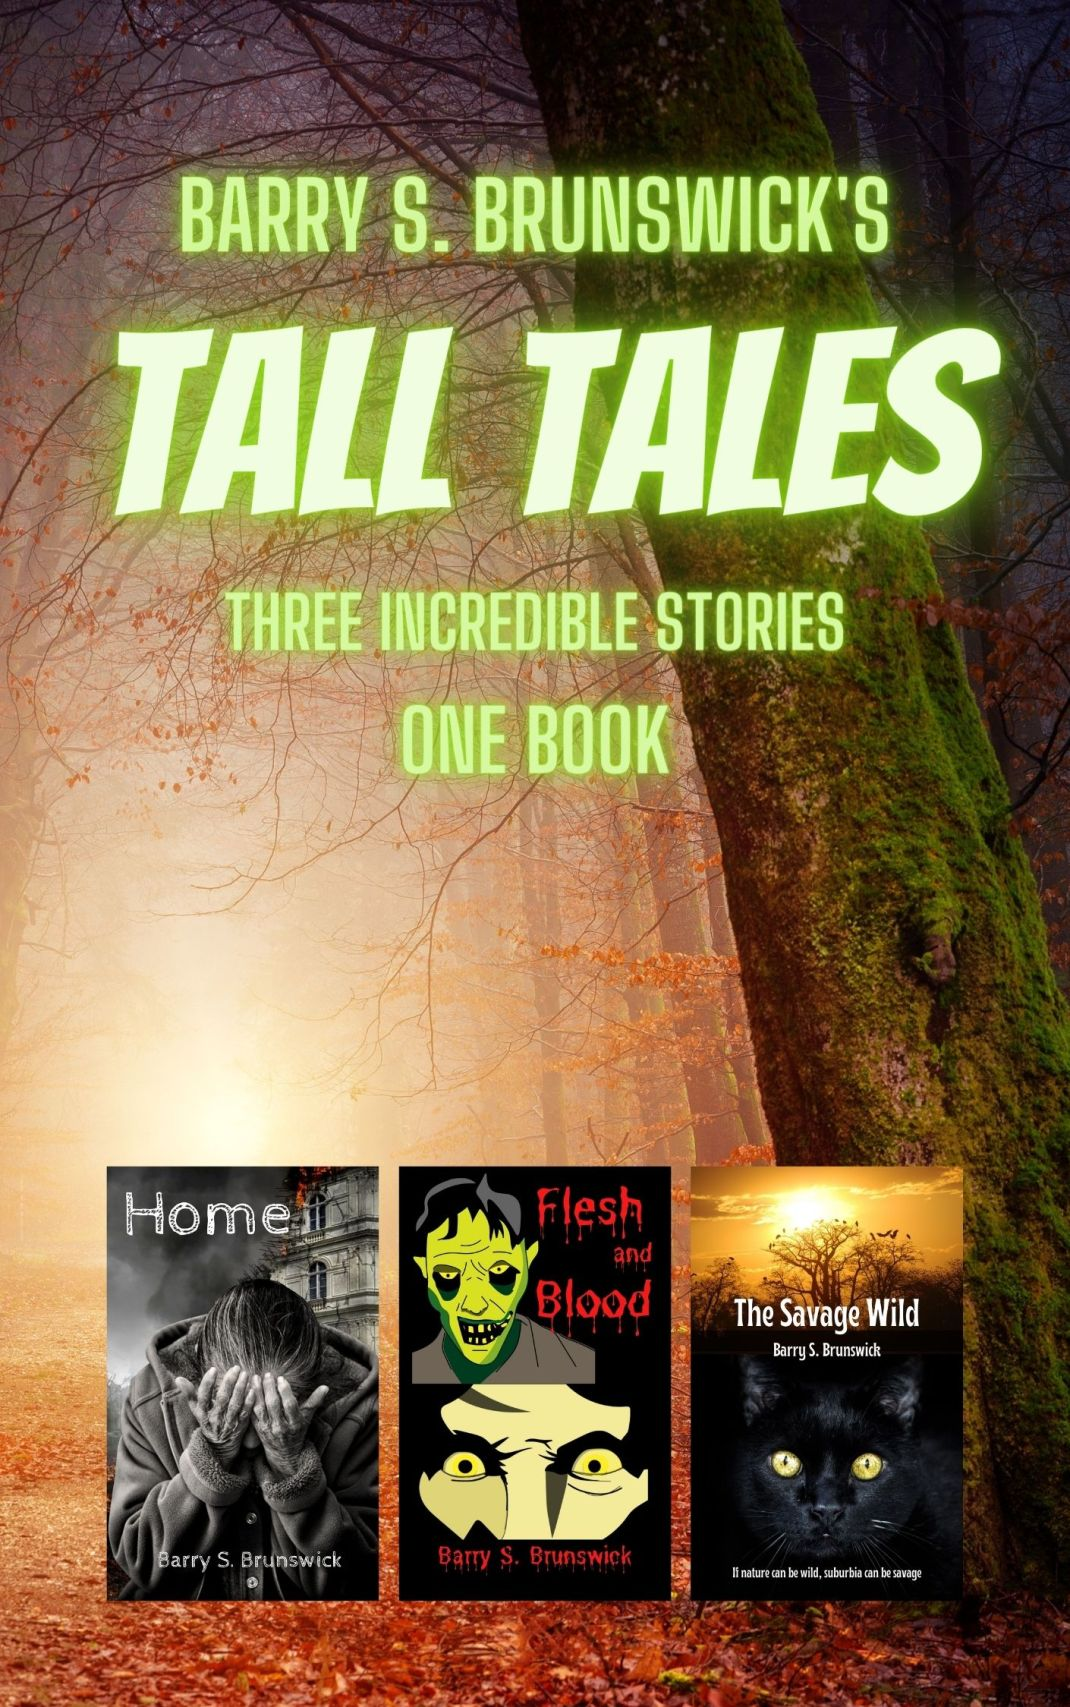 Barry-S-Brunswick-Tall-Tales-Short-Stories-Collection